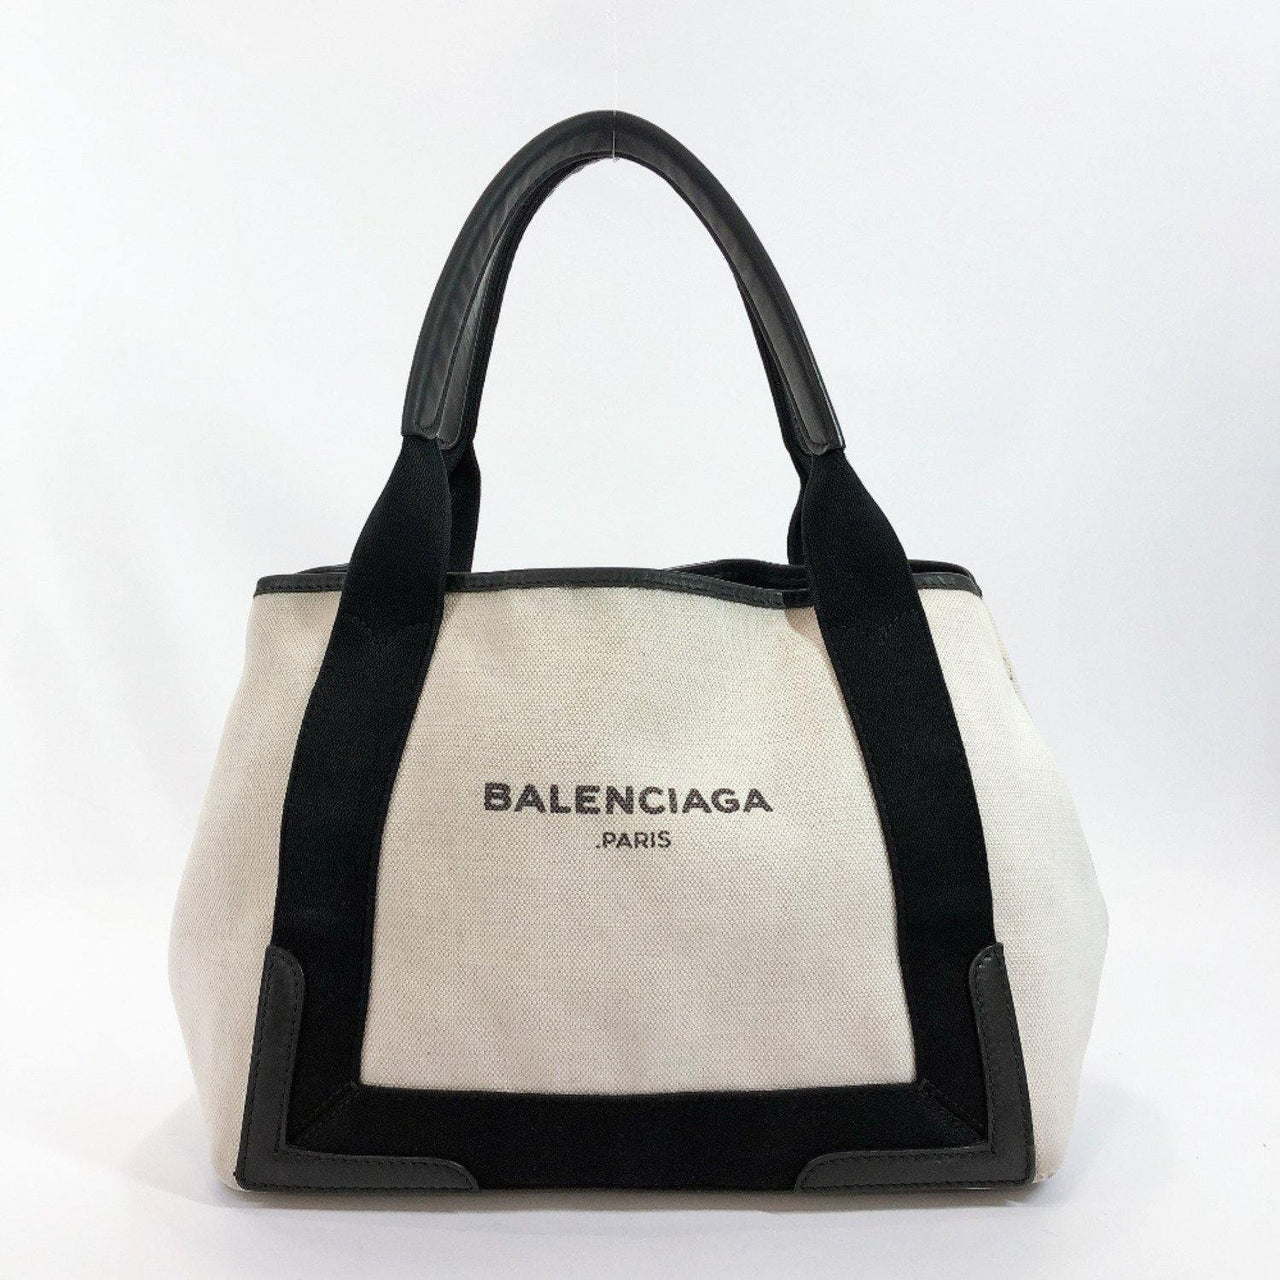 BALENCIAGA Handbag Navy kabas canvas white black Women Used